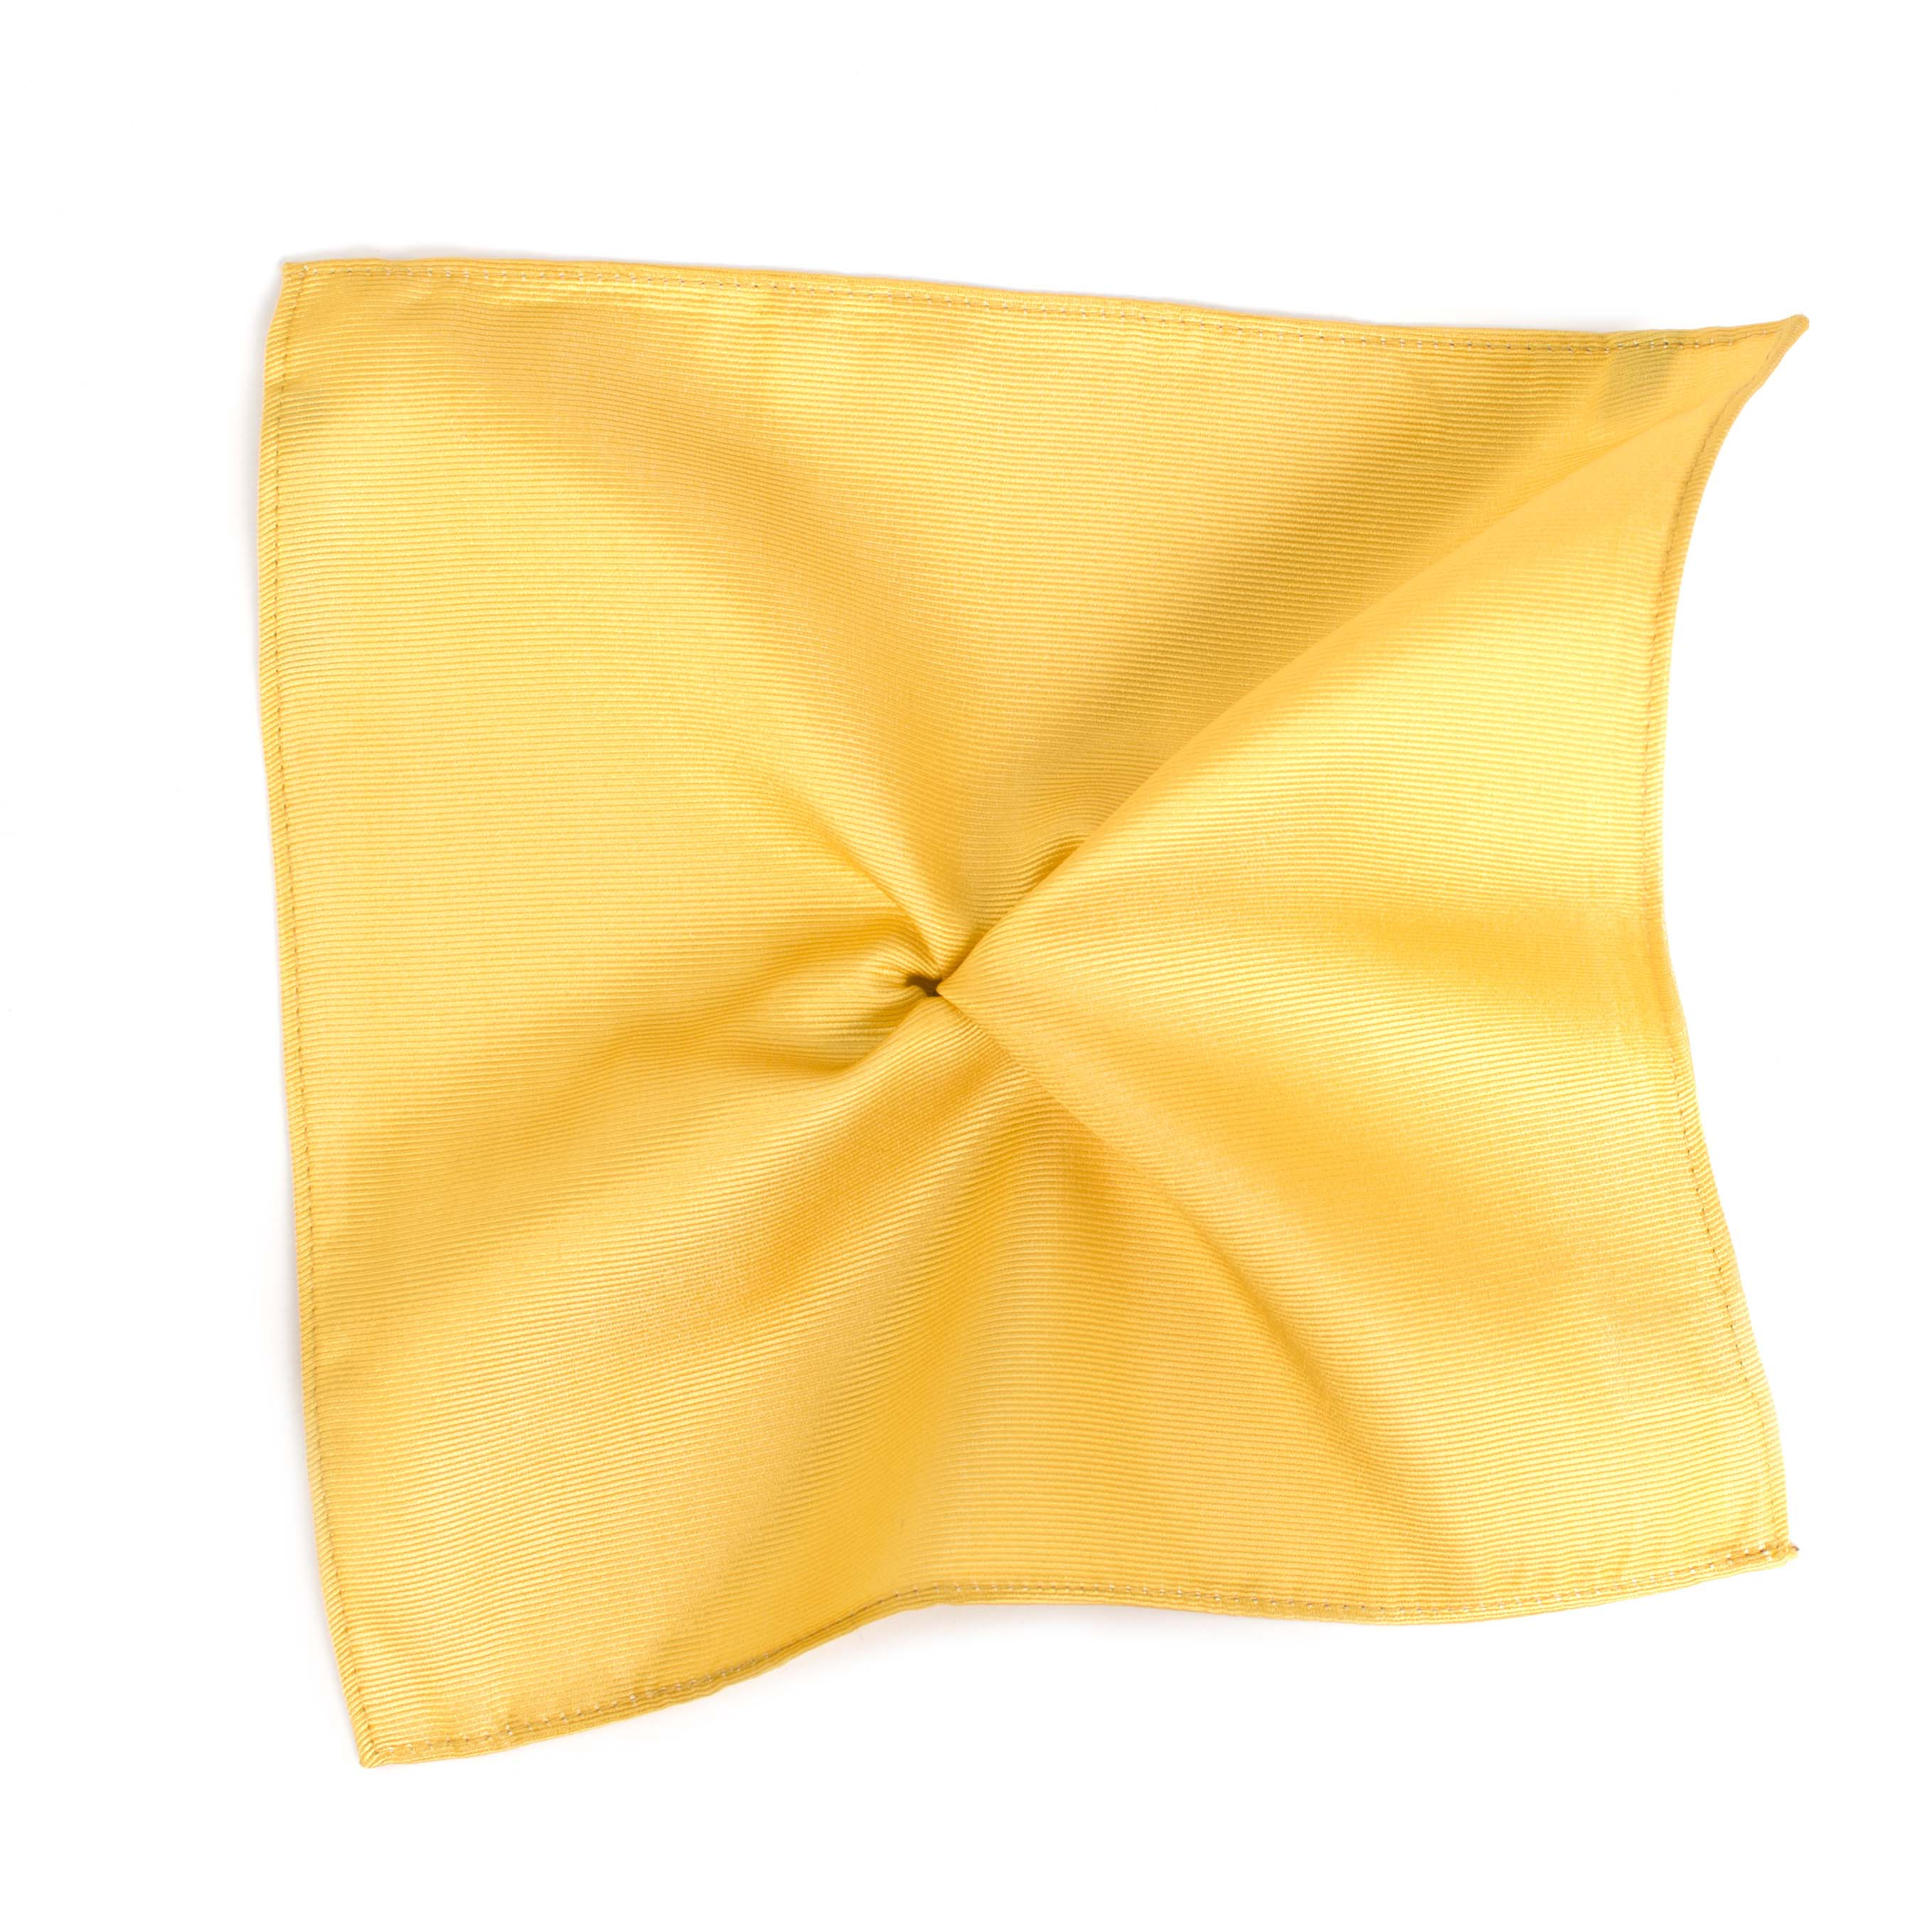 Classic gold ribbed pocket square